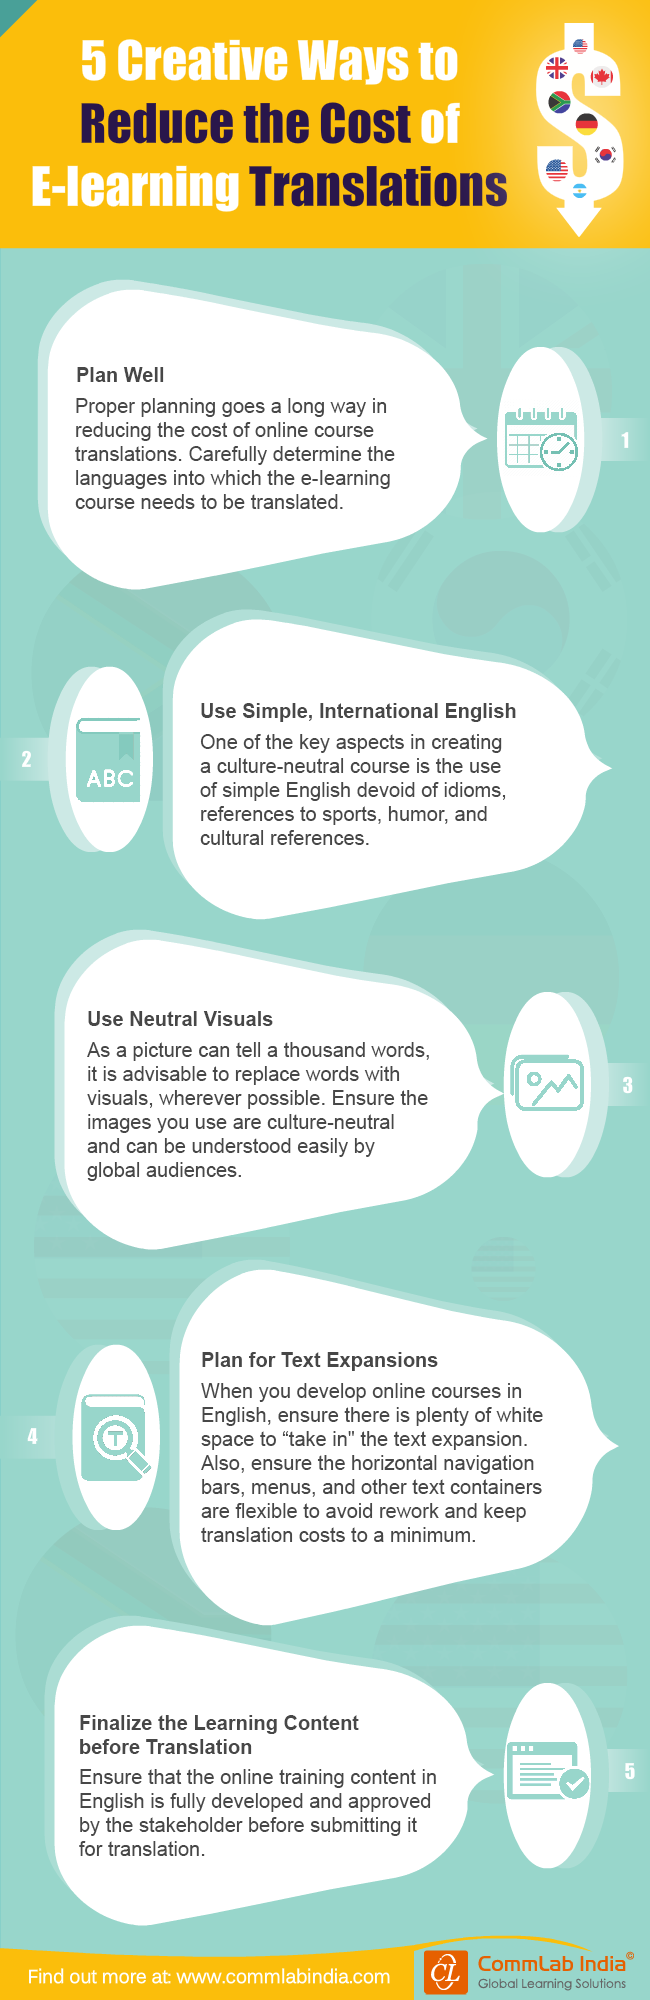 5 Creative Ways to Reduce the Cost of E-learning Translations [Infographic]